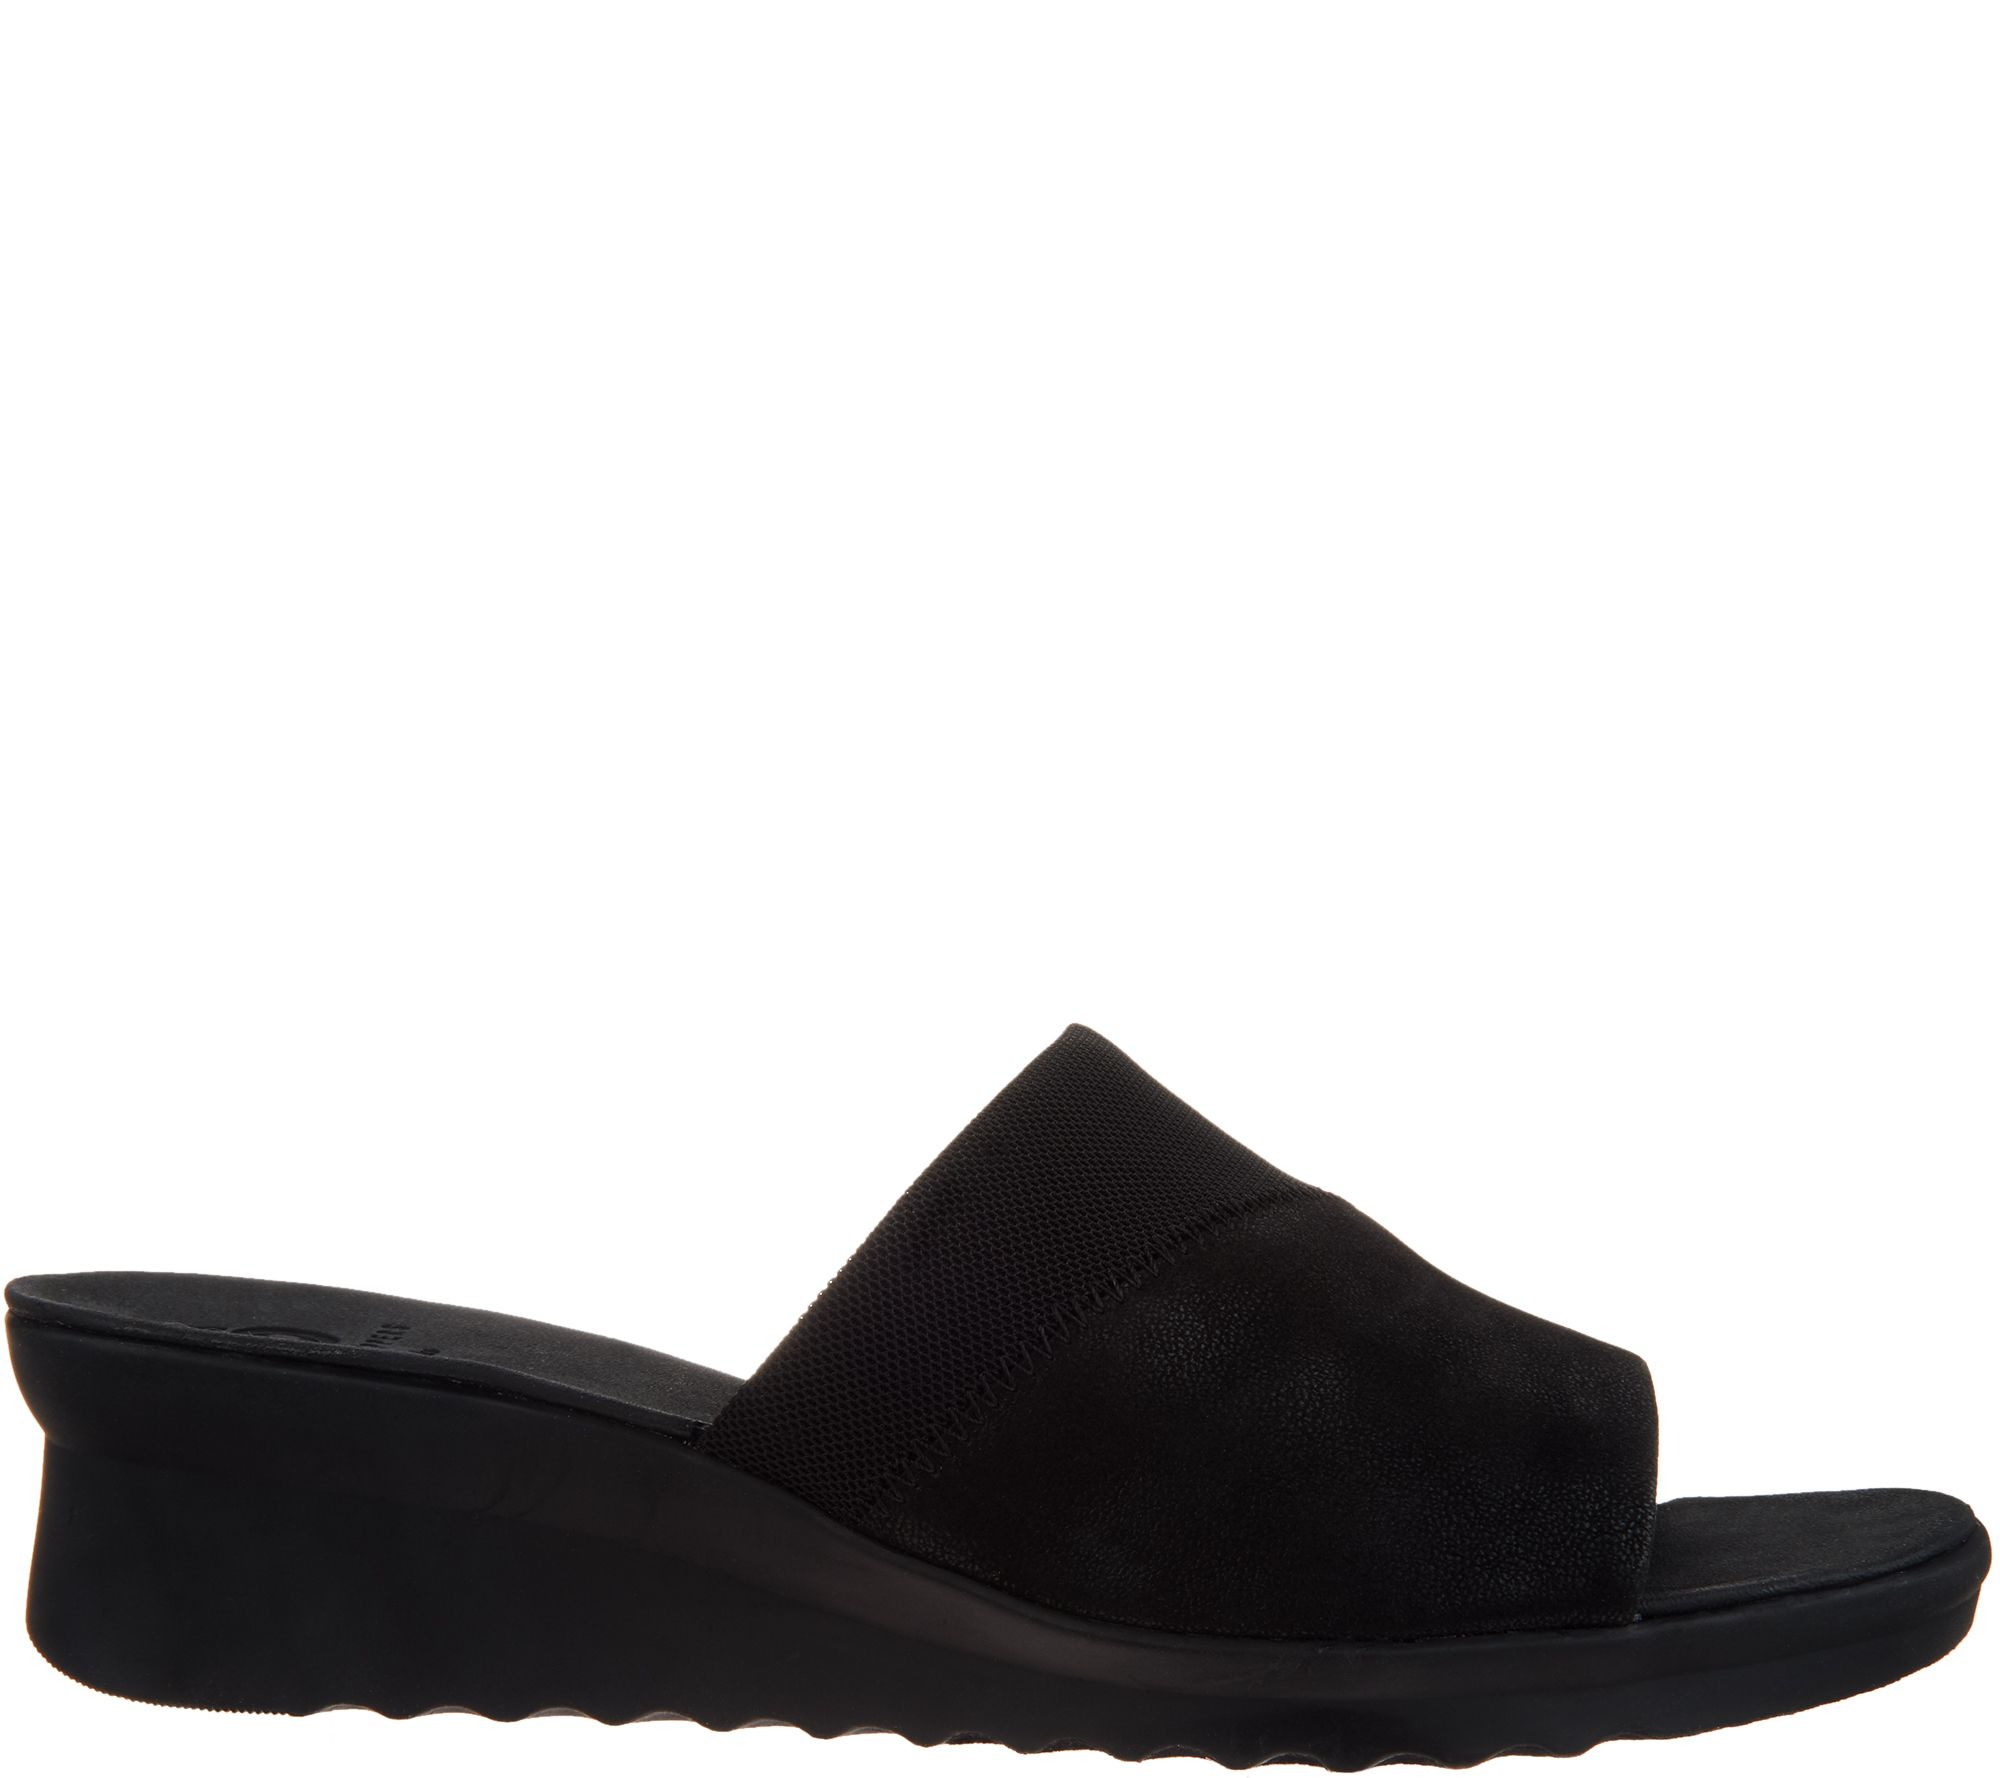 5c7493cfb3eb CLOUDSTEPPERS by Clarks Single Band Slides - Caddell Ivy - Page 1 — QVC.com